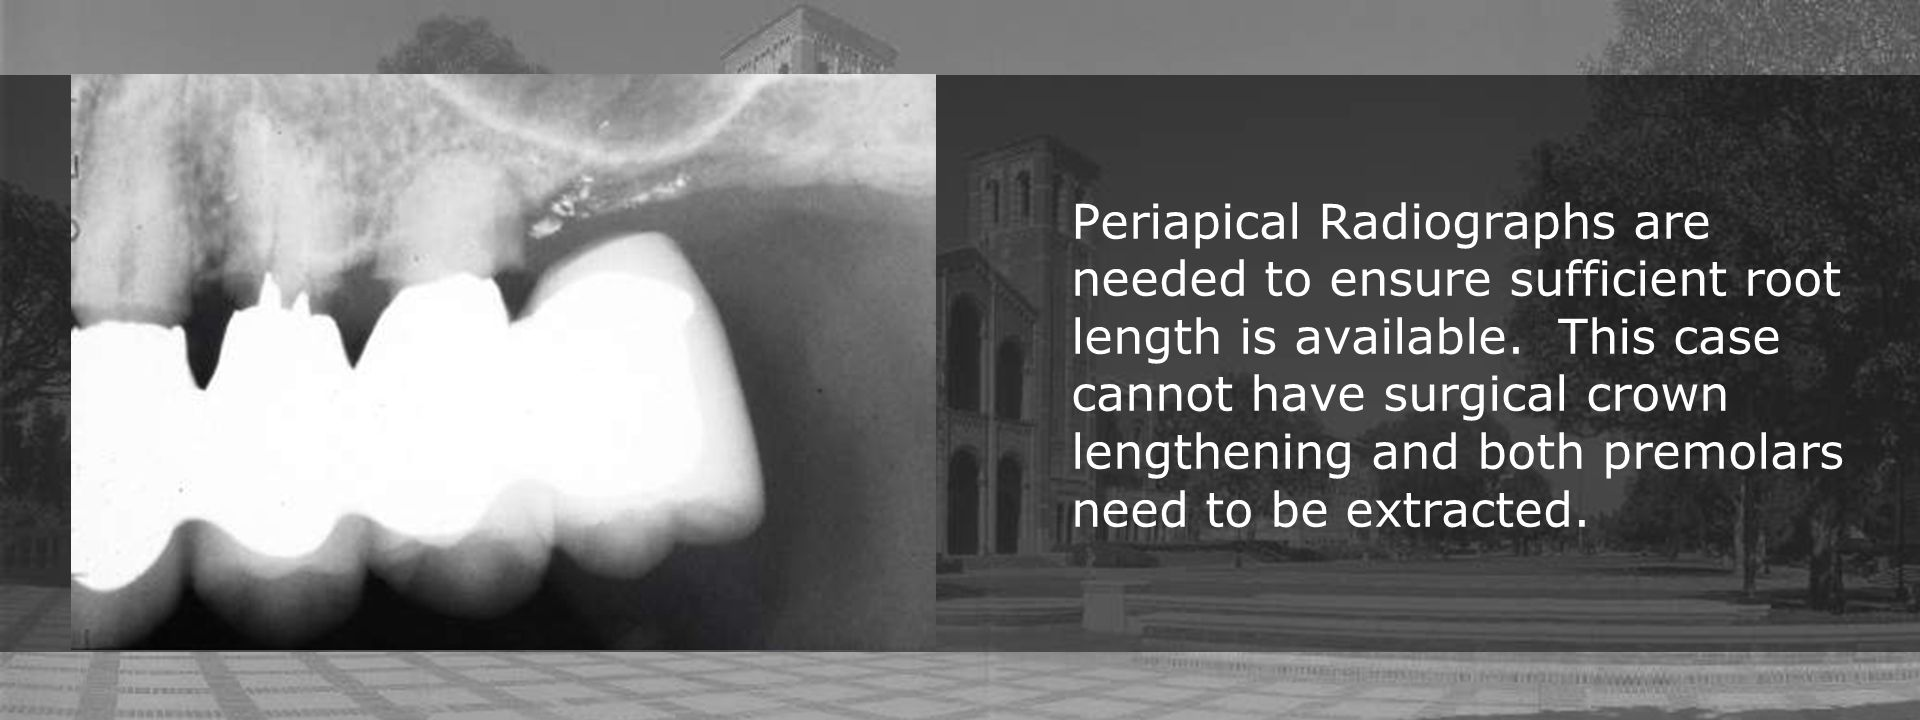 Periapical Radiographs are needed to ensure sufficient root length is available.